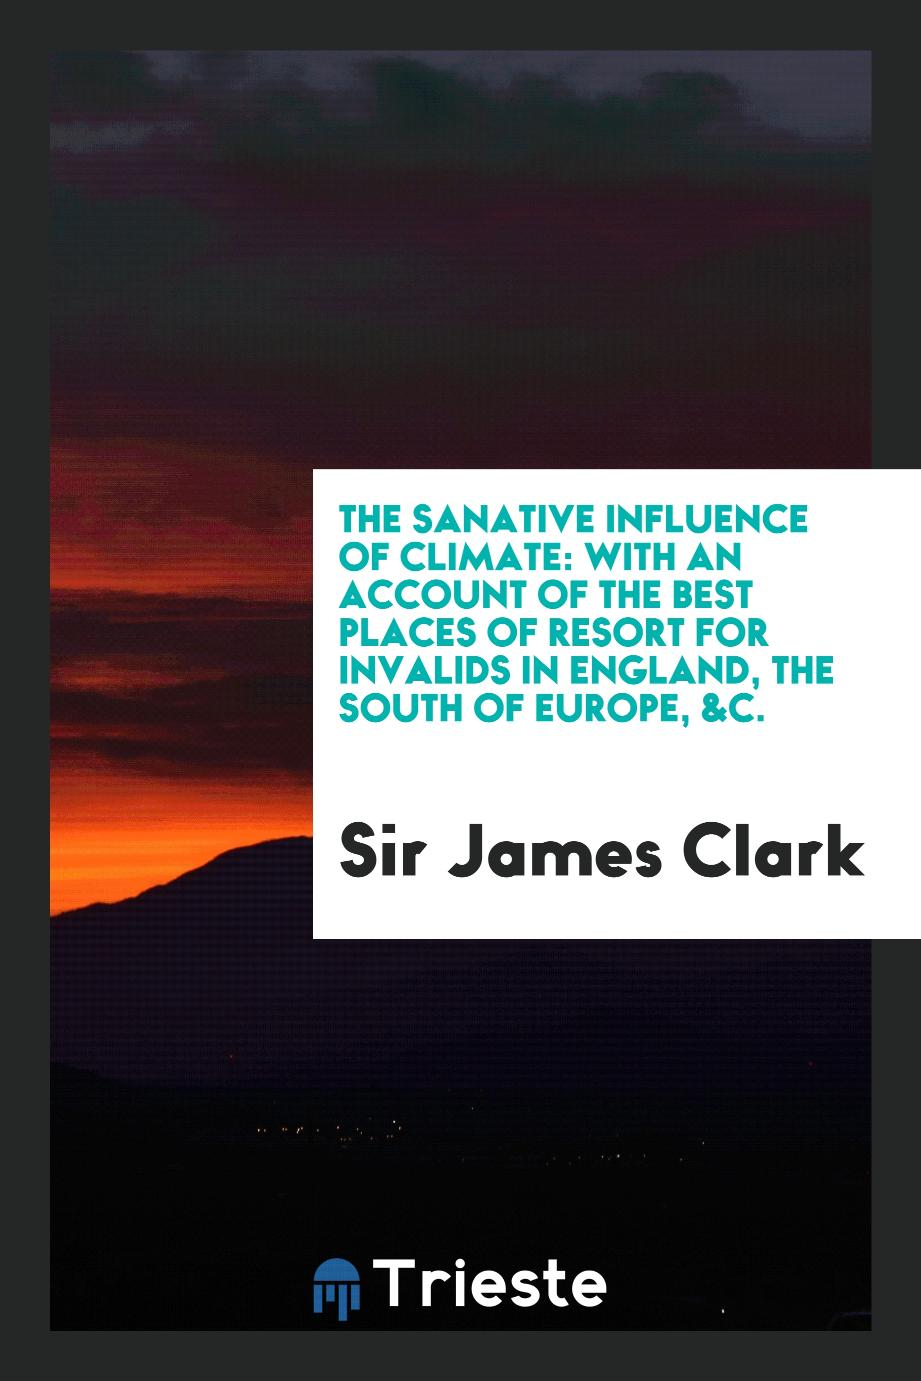 The sanative influence of climate: with an account of the best places of resort for invalids in England, the south of Europe, &c.